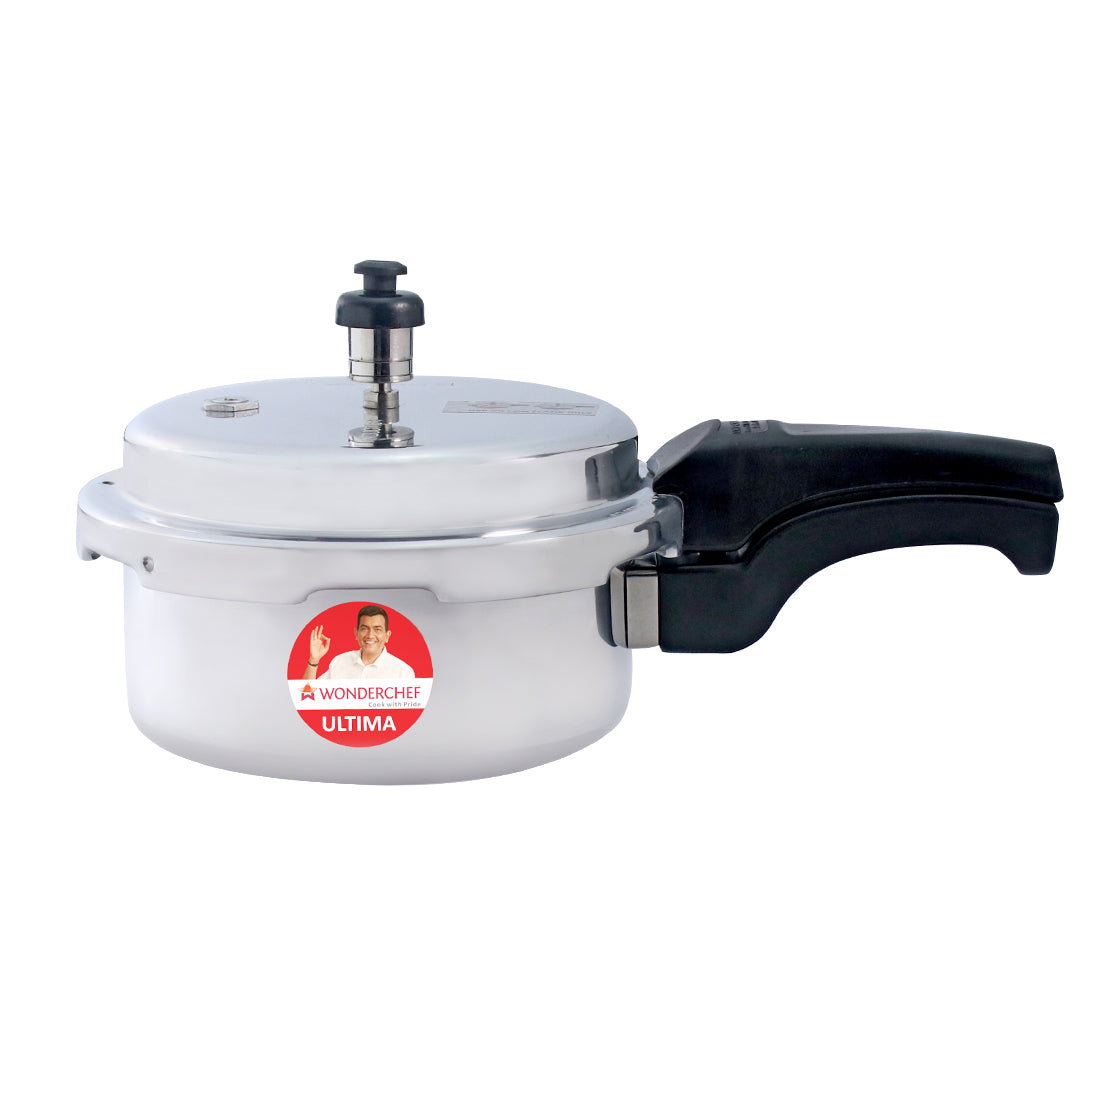 Wonderchef Ultima Pressure Cooker Outer Lid 1.5L